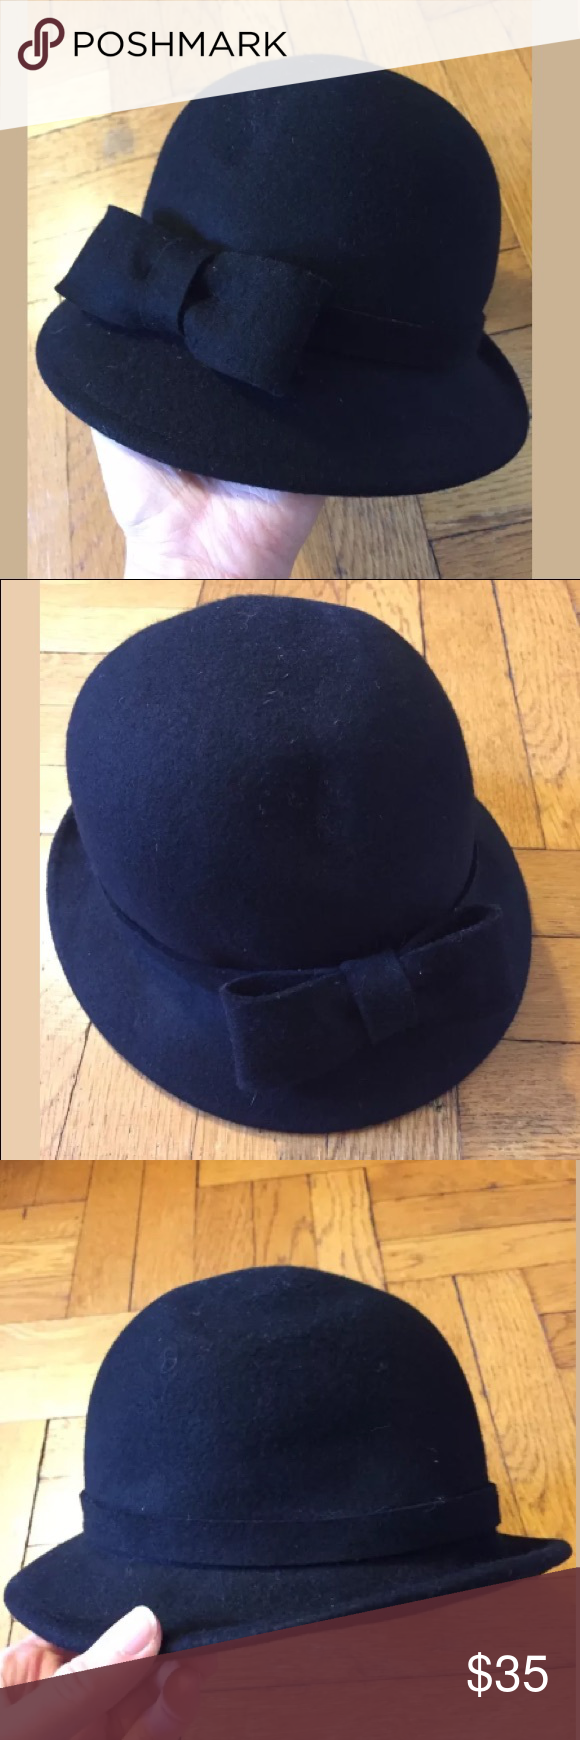 44bf69a0d85 Zara black wool bucket bow fashion hat Excellent condition! Measures  approx  9